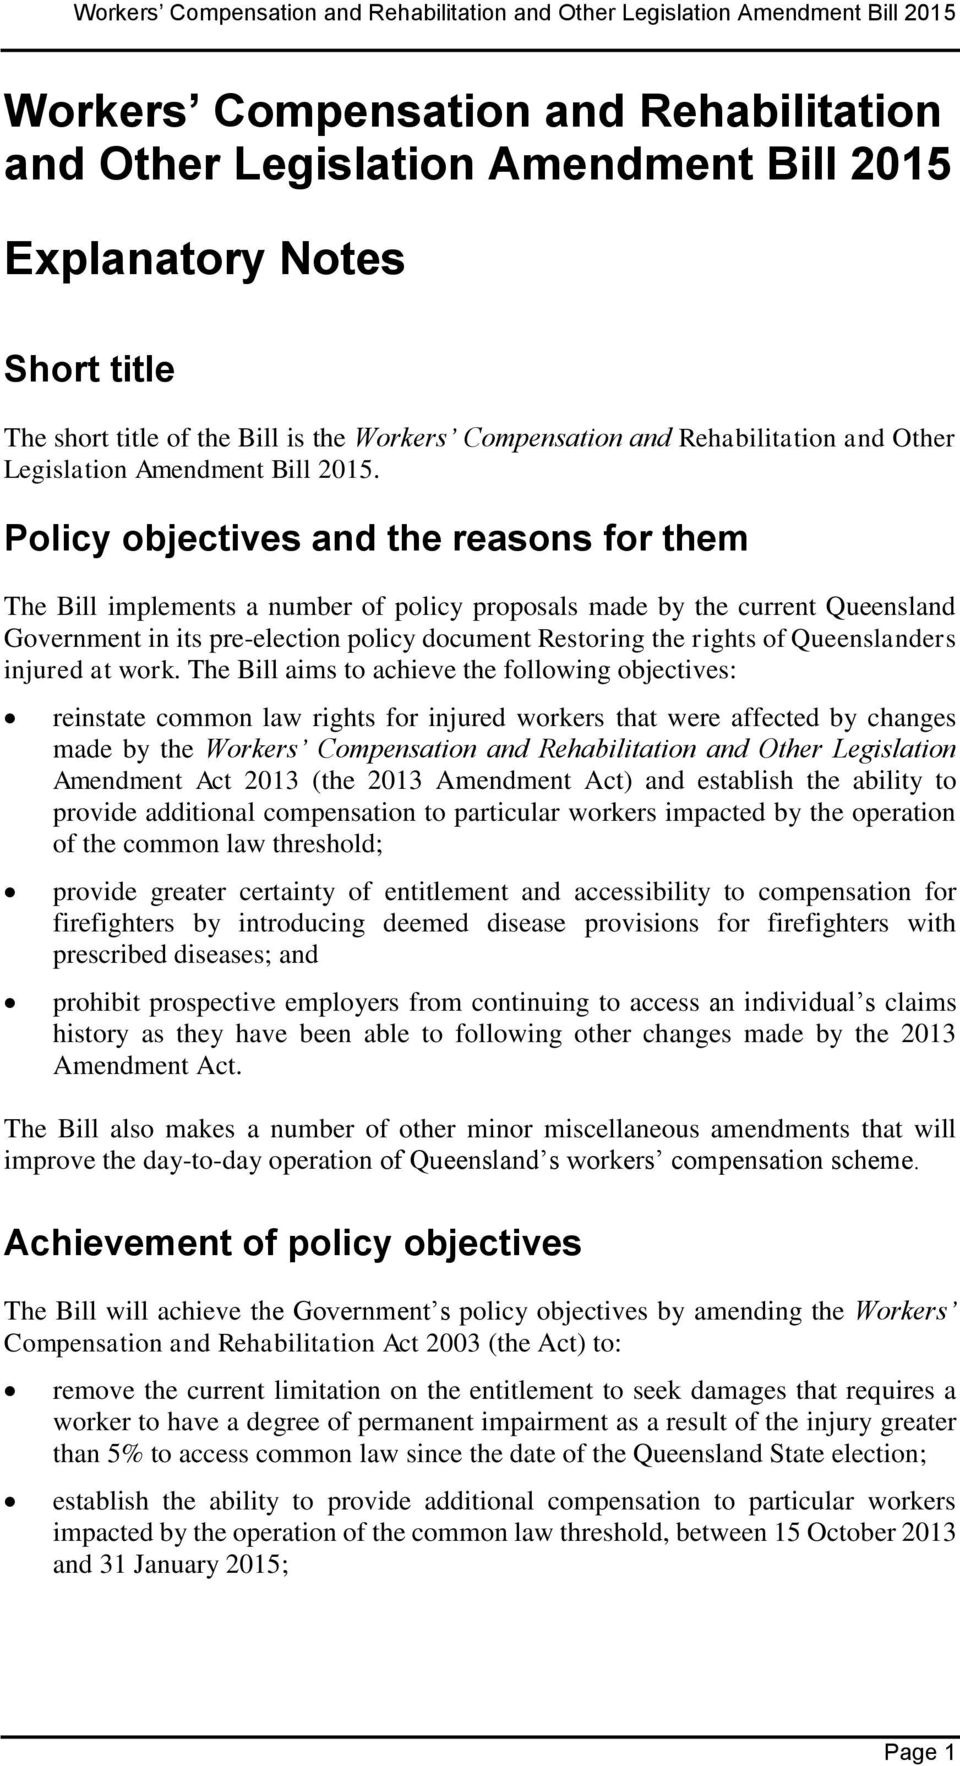 Policy objectives and the reasons for them The Bill implements a number of policy proposals made by the current Queensland Government in its pre-election policy document Restoring the rights of